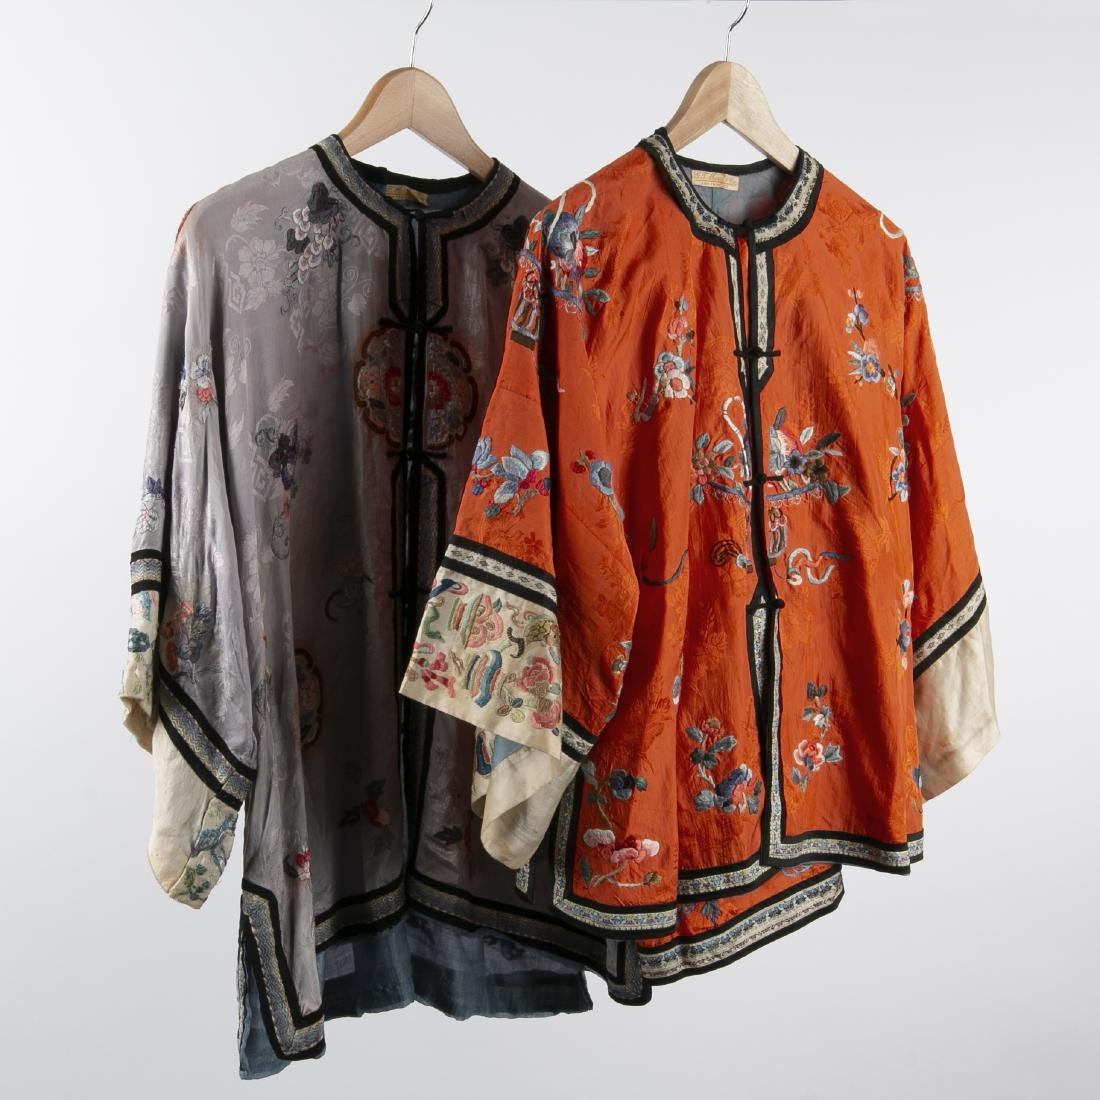 TWO CHINESE SILK ROBES WITH 1 PAIR MATCHING PANTS